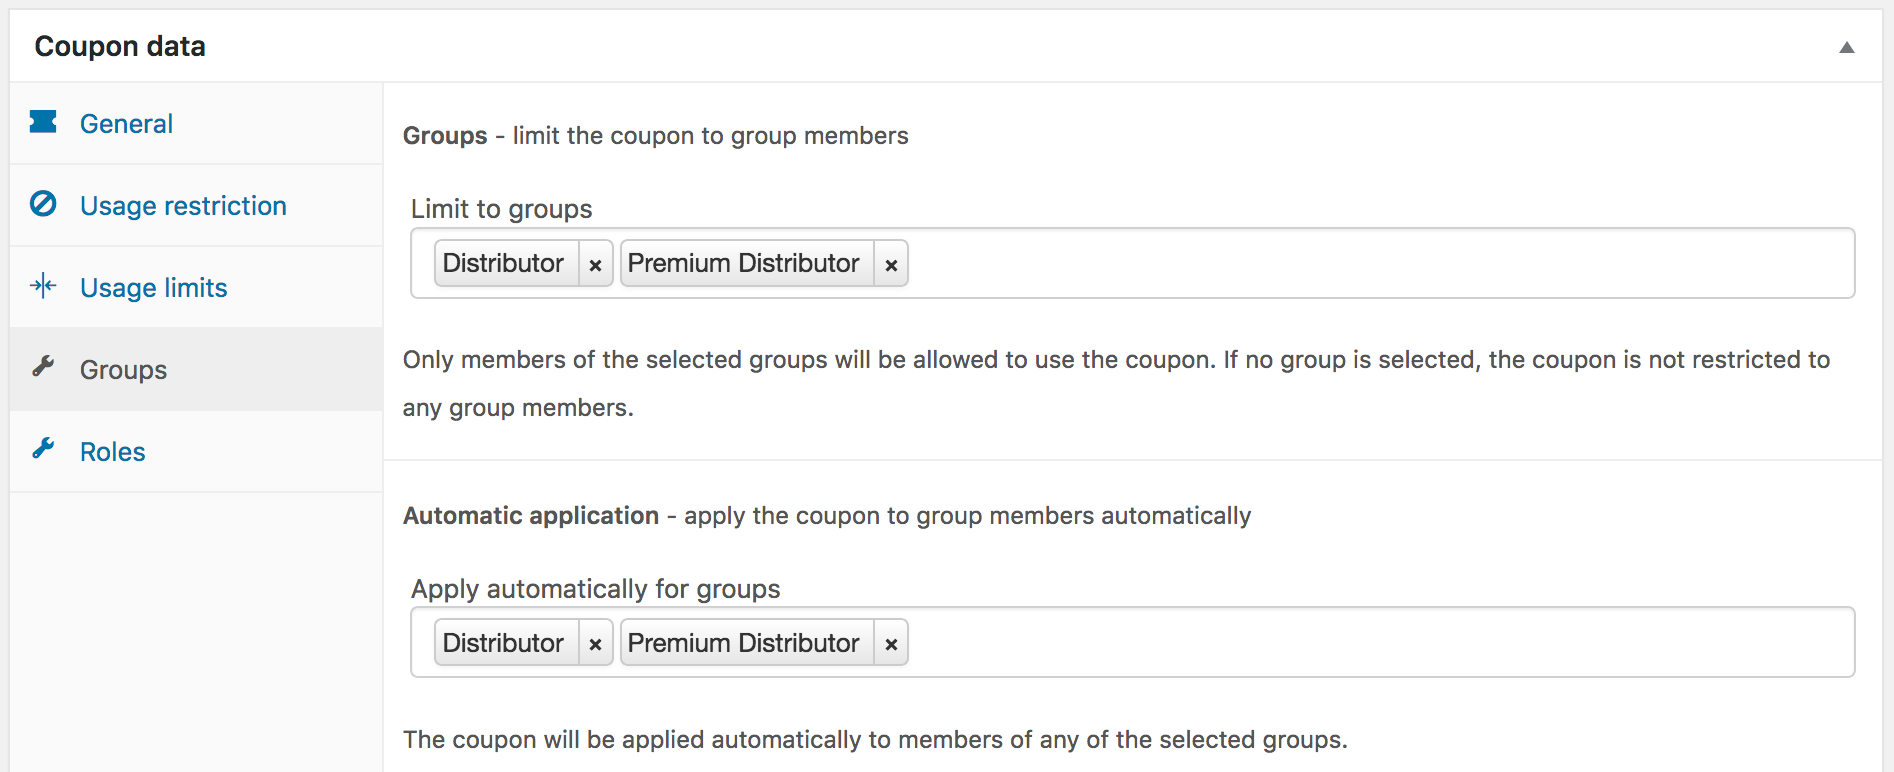 Coupon settings for distributor groups